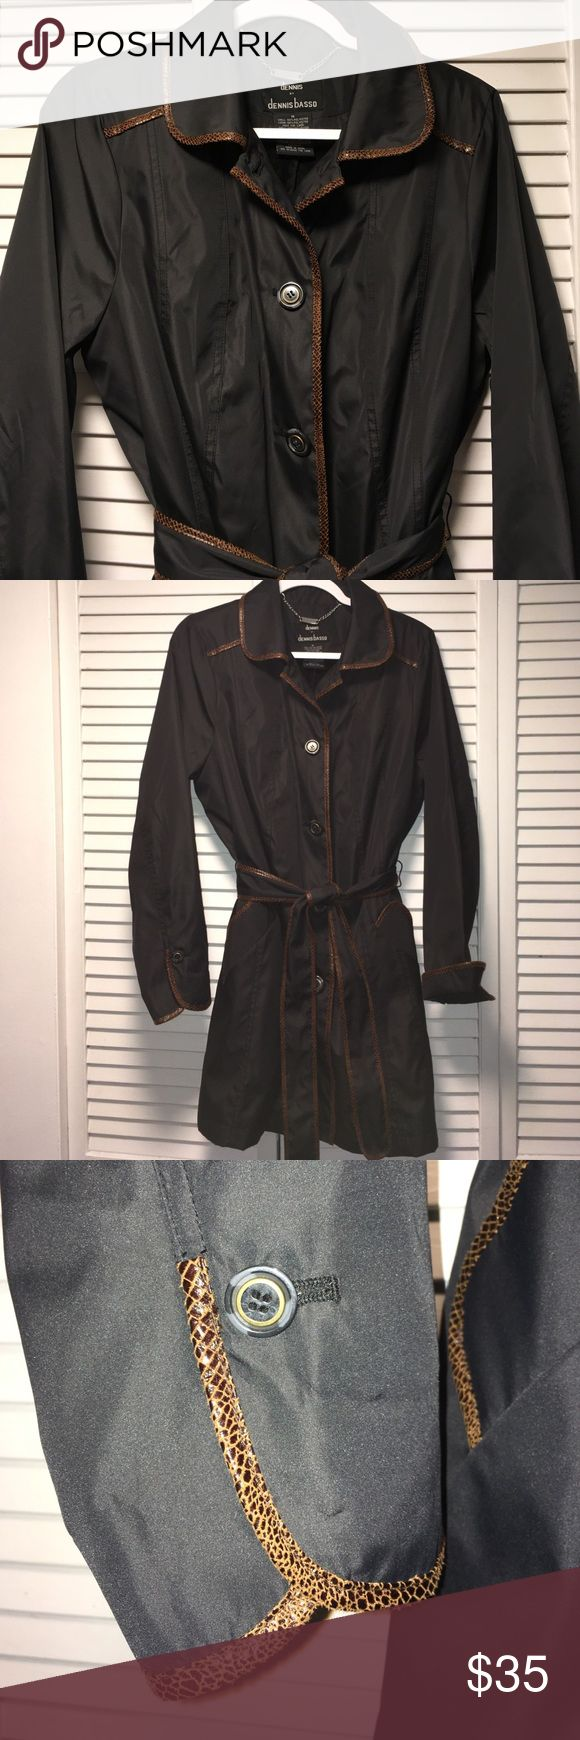 NWOT Dennis Basso Rain Coat w/ faux snake trim MED New Without Tags - back slit is still sewn together.  Black all weather / rain/ trench coat with brown faux snake skin trim.  Sleeves can be rolled up or down as needed for length.  100% Polyester shell and Lining.  Faux fur inside. Dennis Basso Jackets & Coats Trench Coats